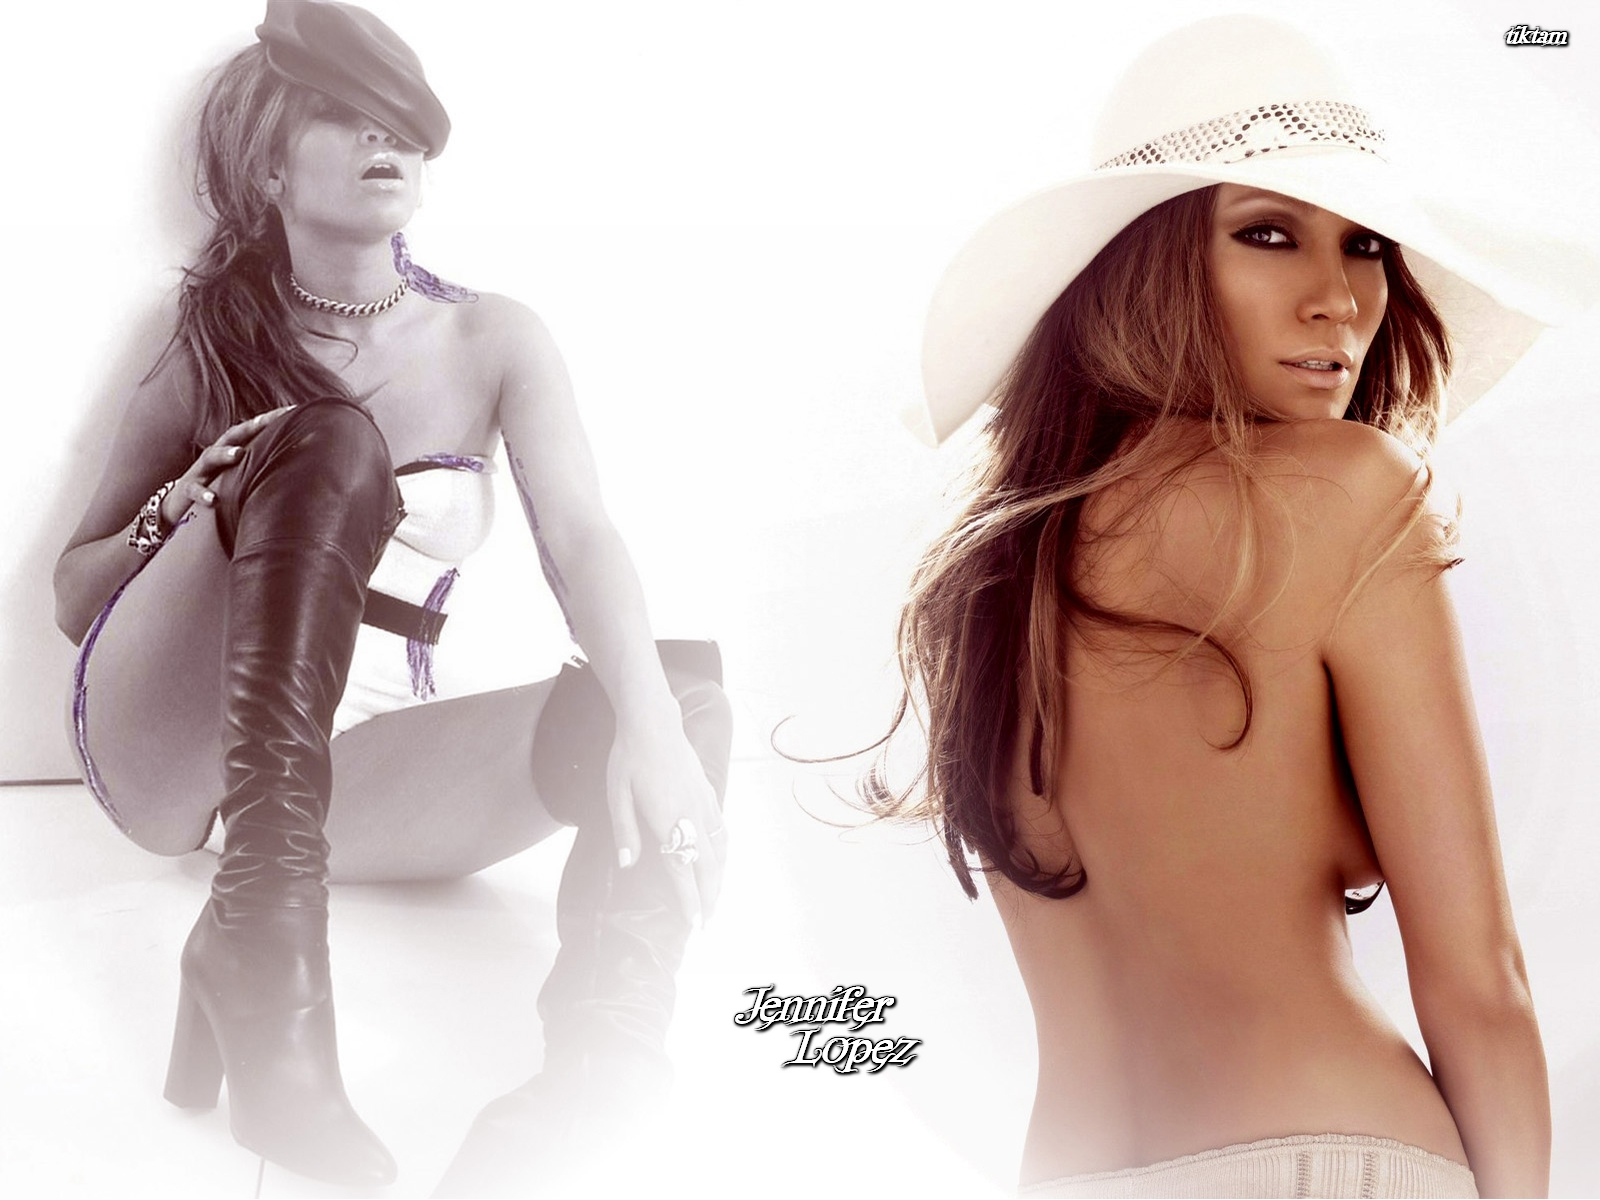 Related Jennifer lopez wallpapers